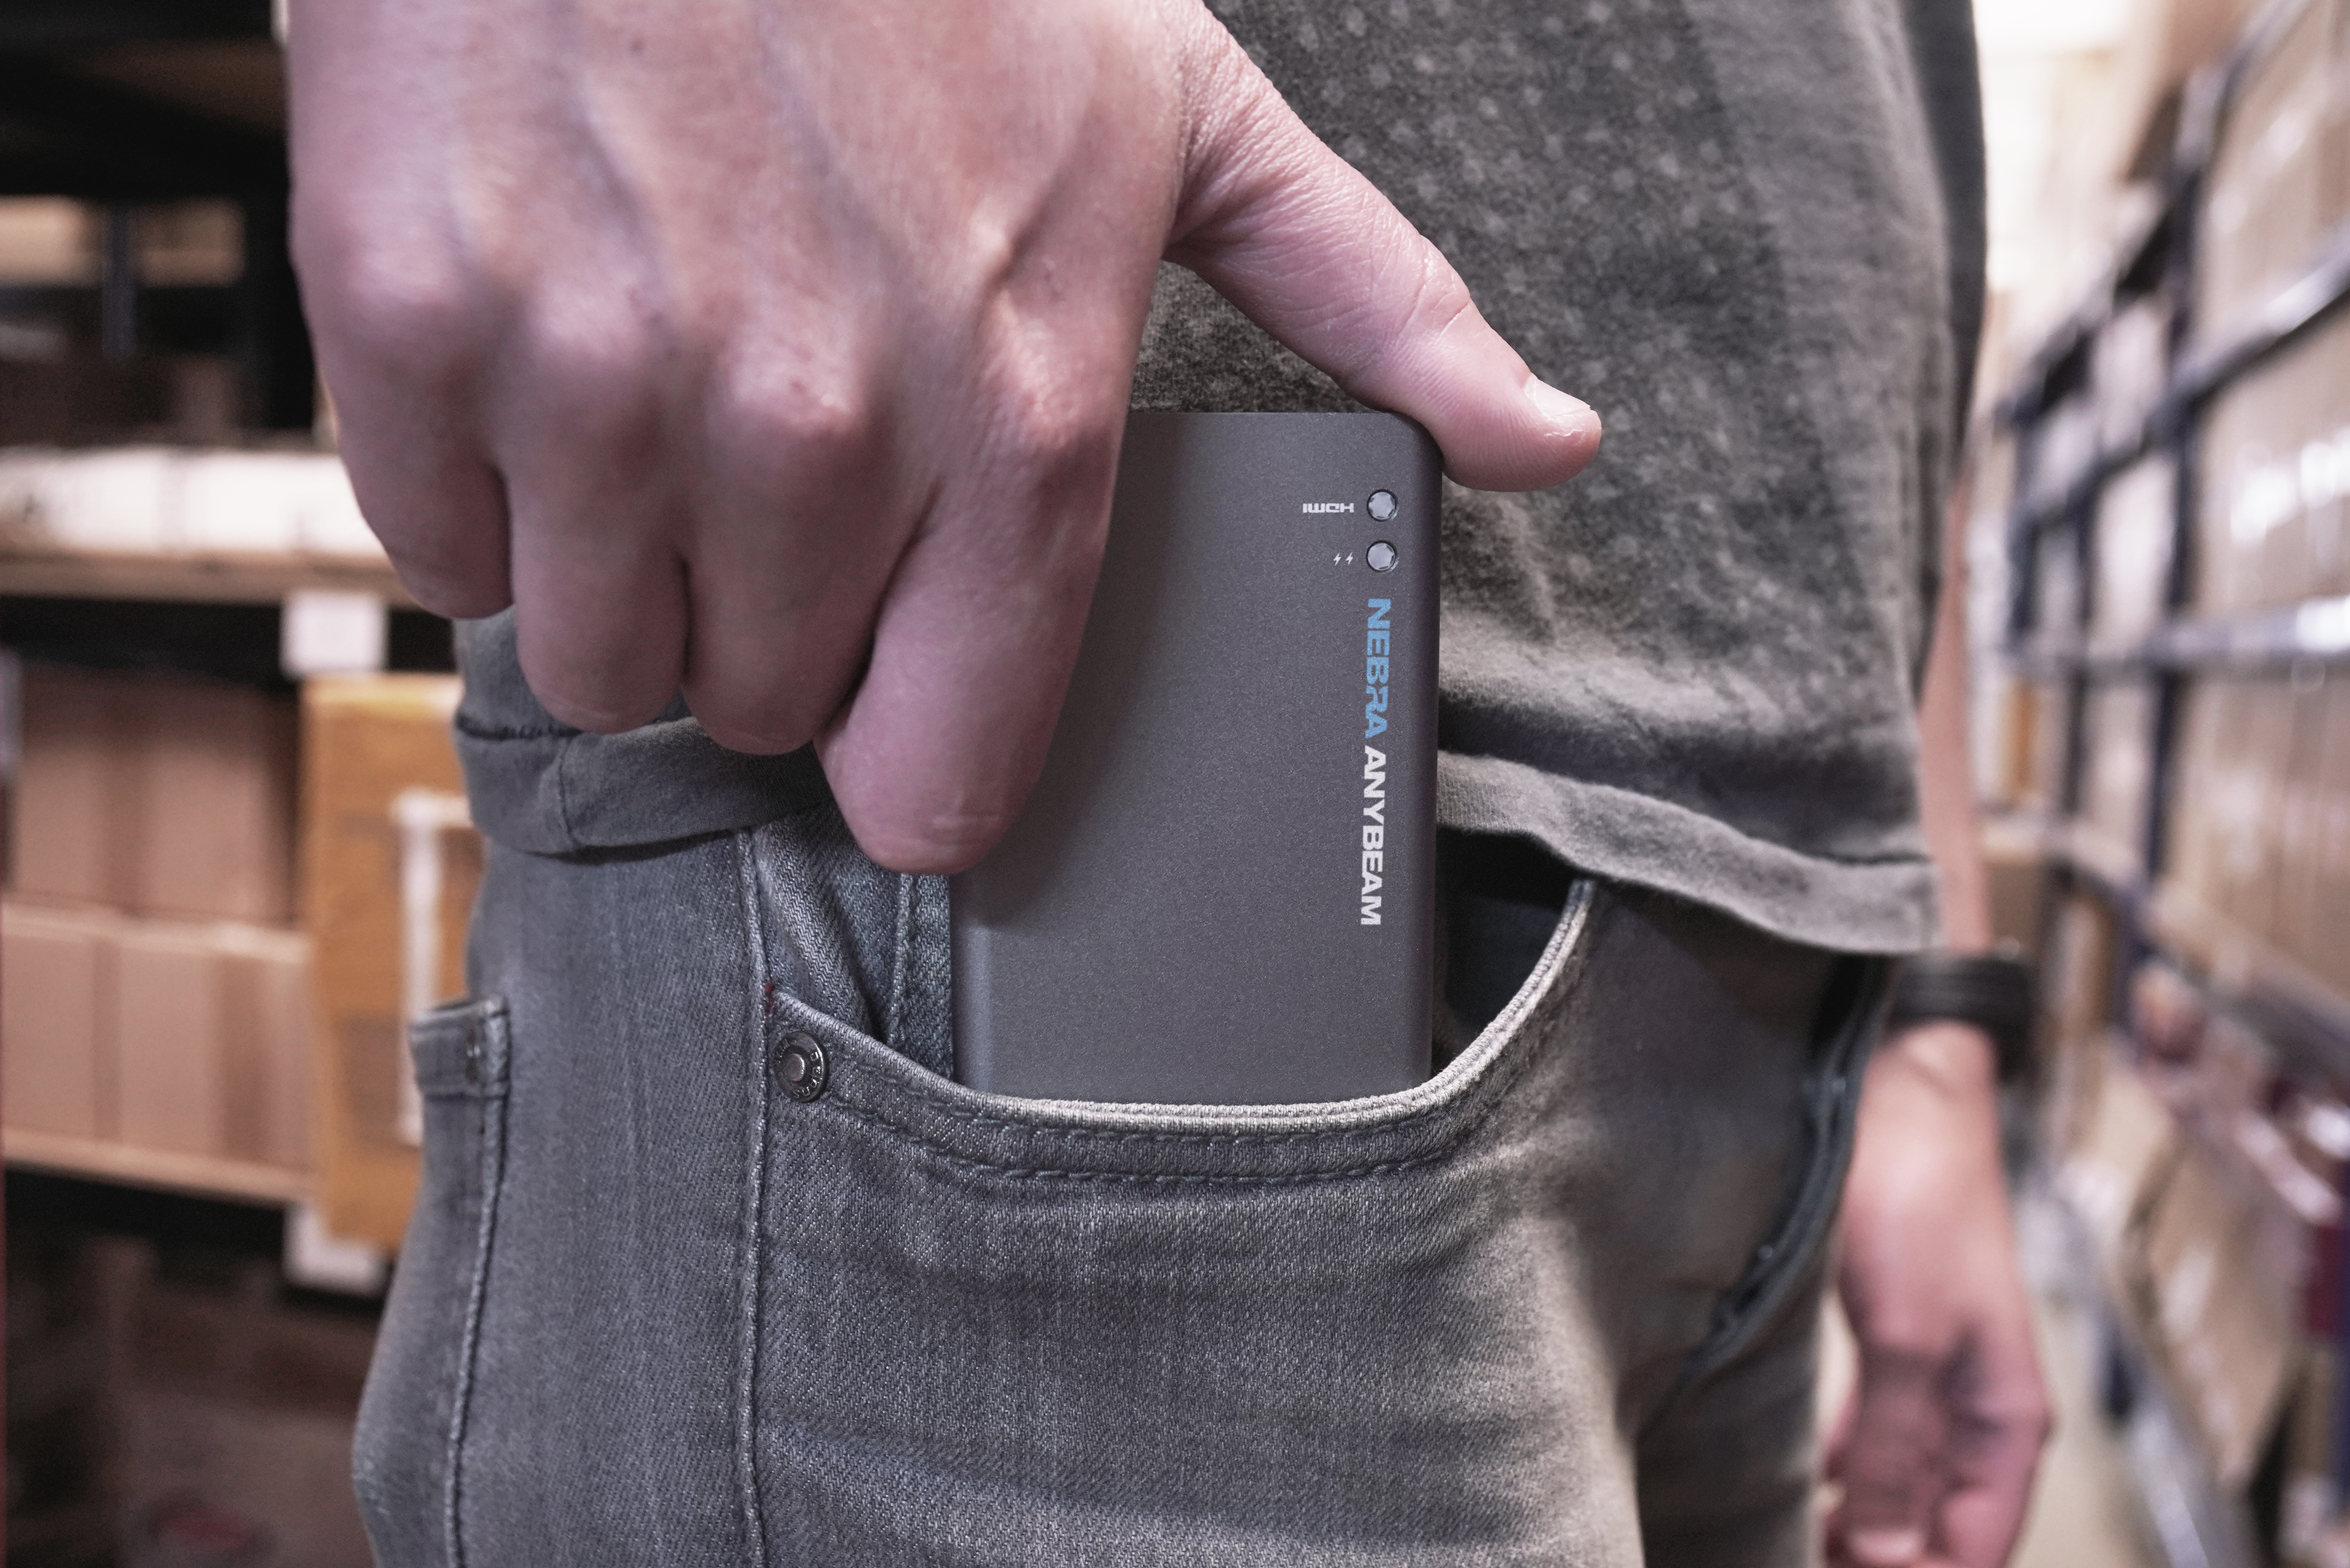 World's smallest 'pocket cinema' lets you carry around a 150-inch screen